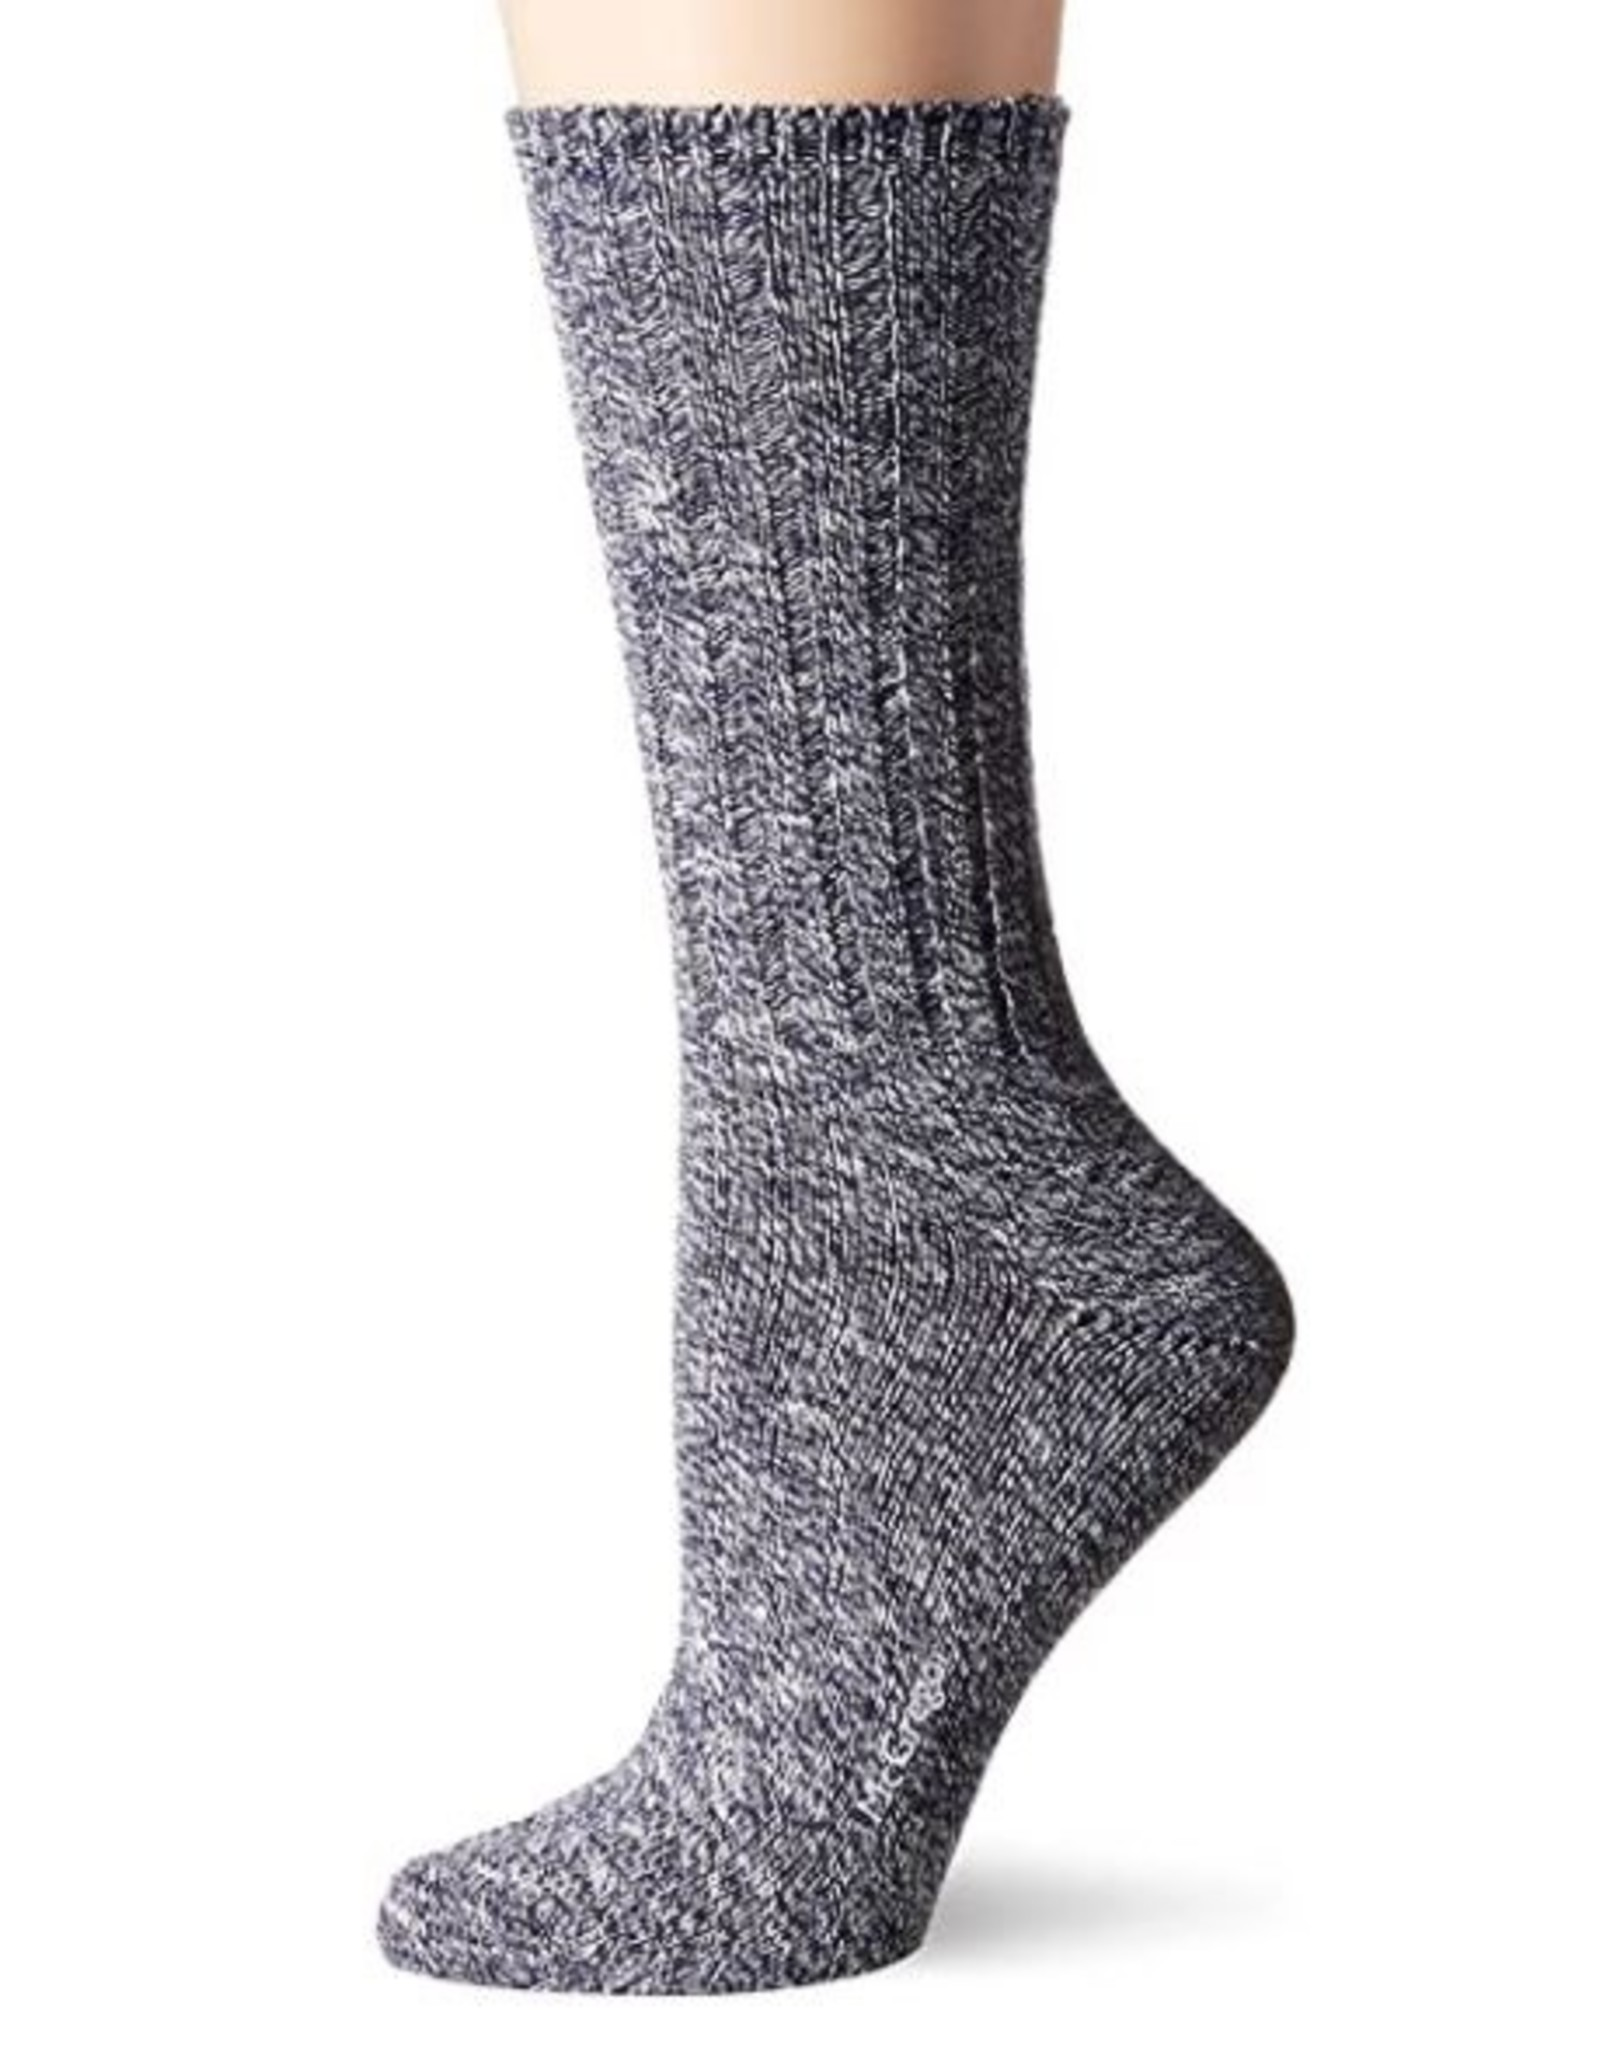 McGregor Socks Women's Weekender Cotton Sock - Navy Mix